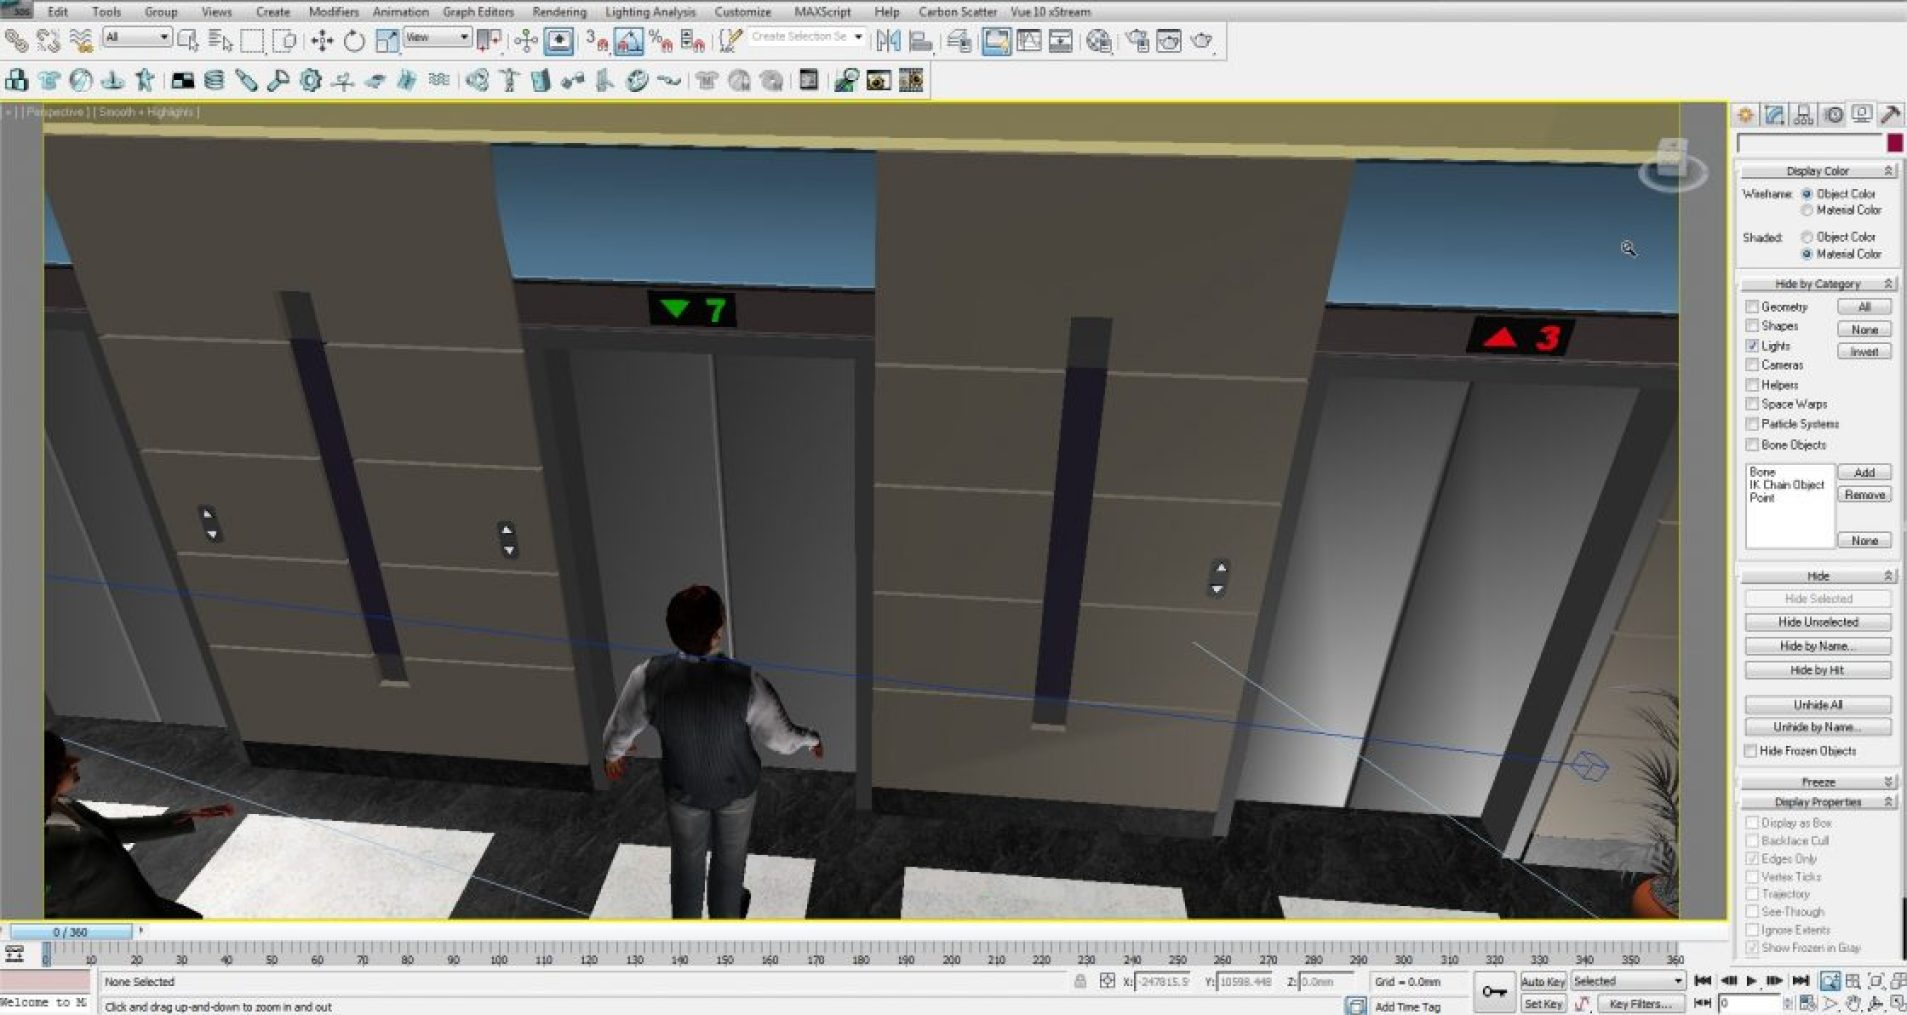 lift lobby animation.max - Autodesk 3ds Max Design 2011 x64  - Unregistered Version